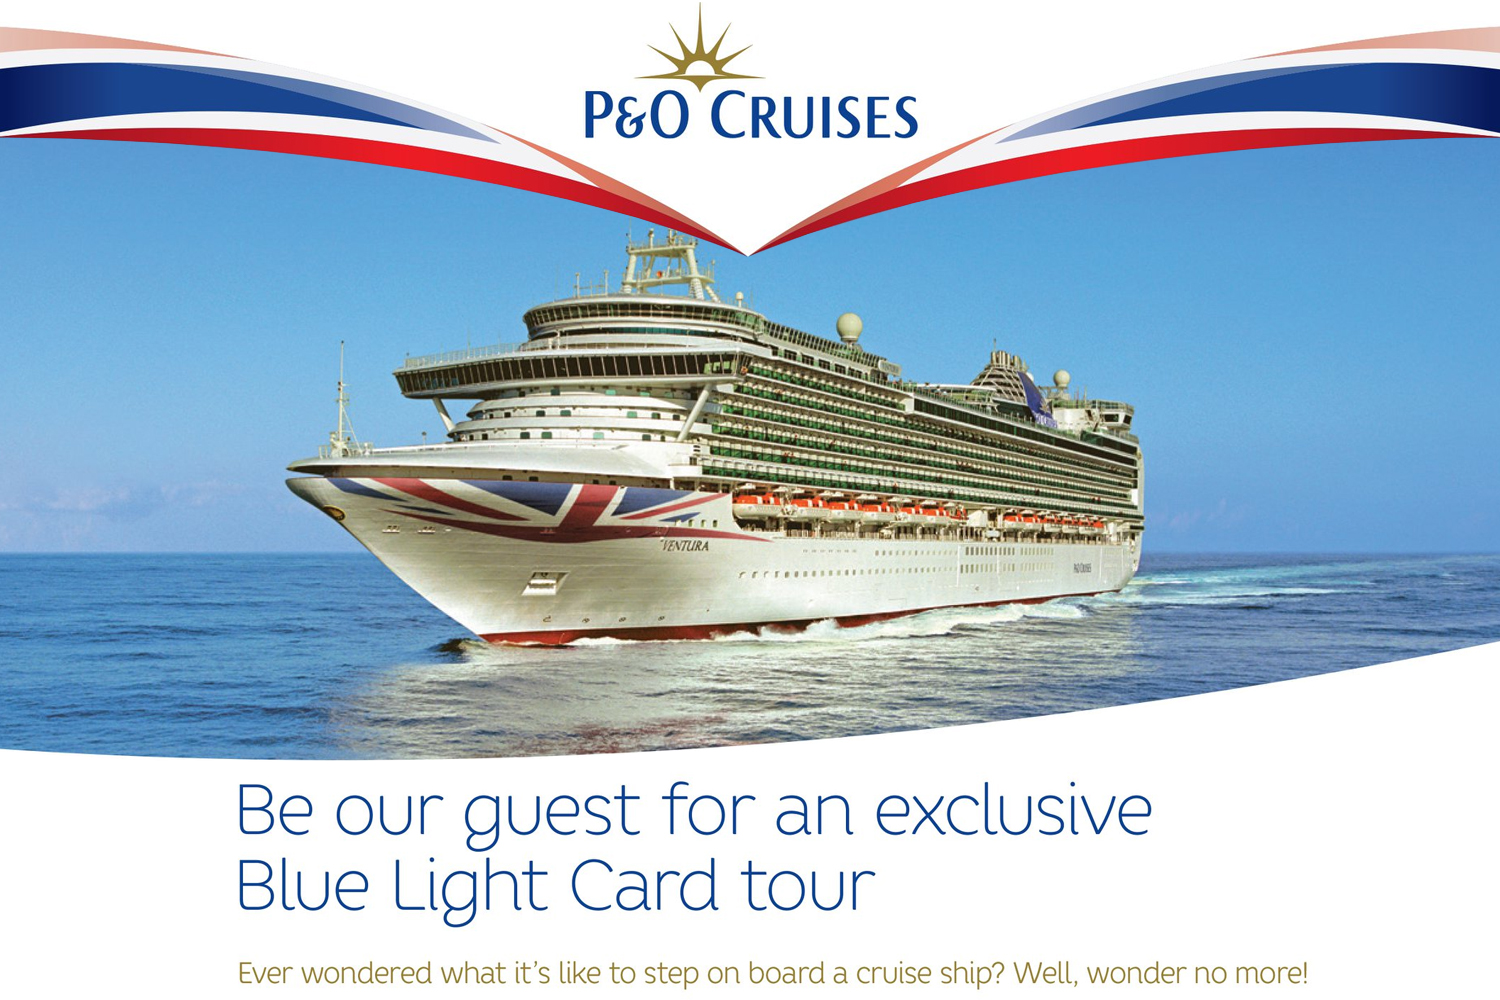 Exclusive Blue Light Card ship tour!